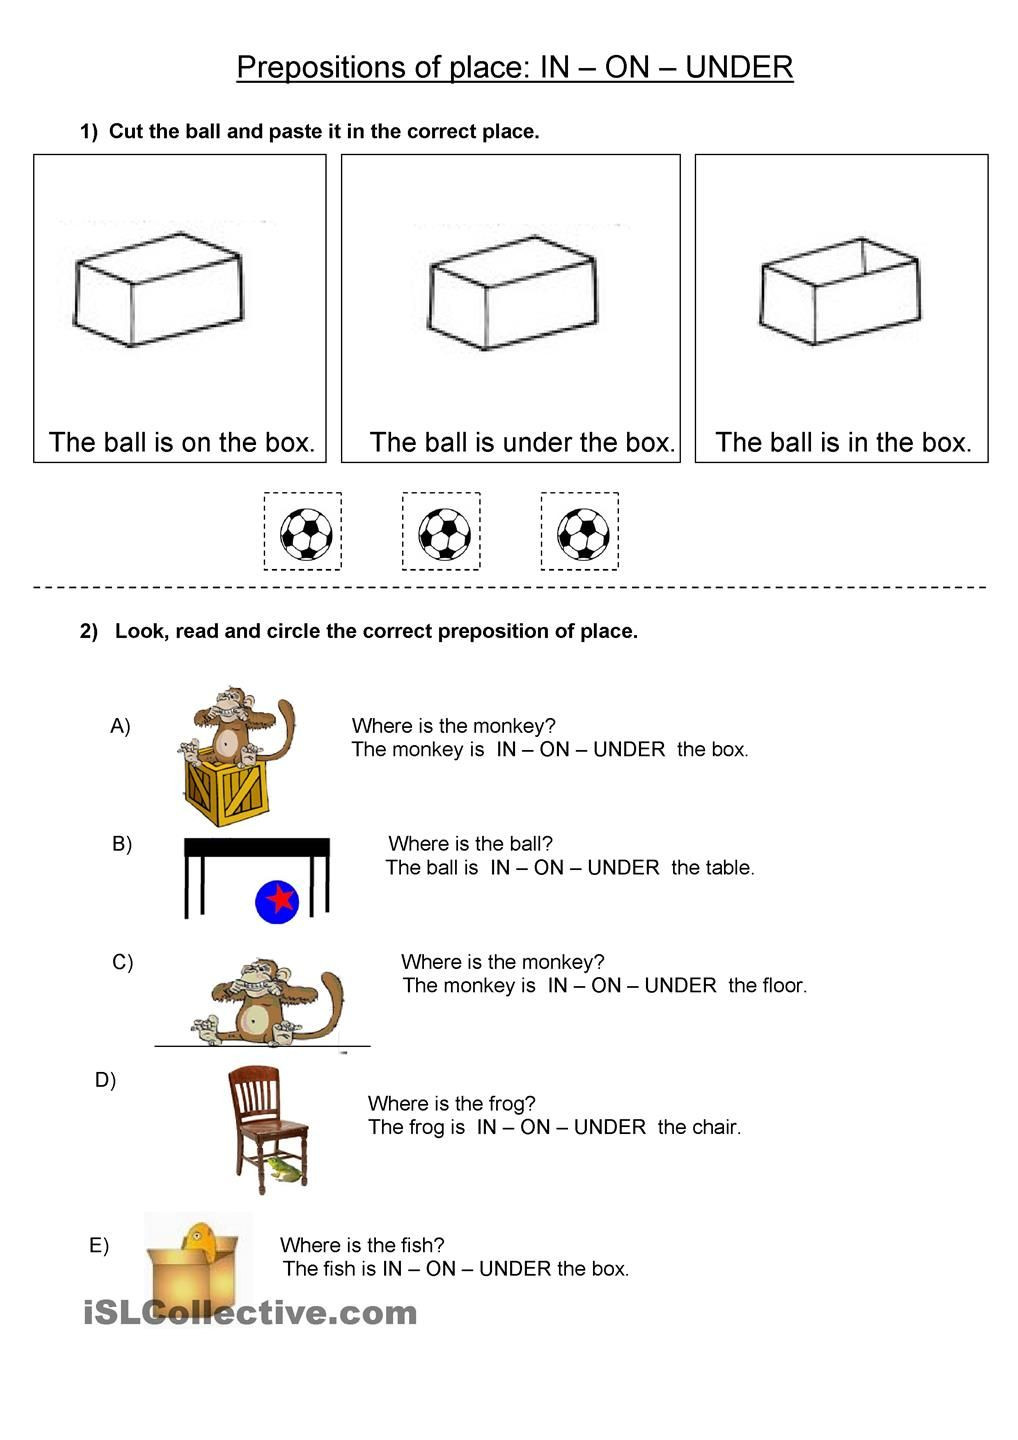 Preposition Worksheets for Middle School Prepositions Of Place In On Under